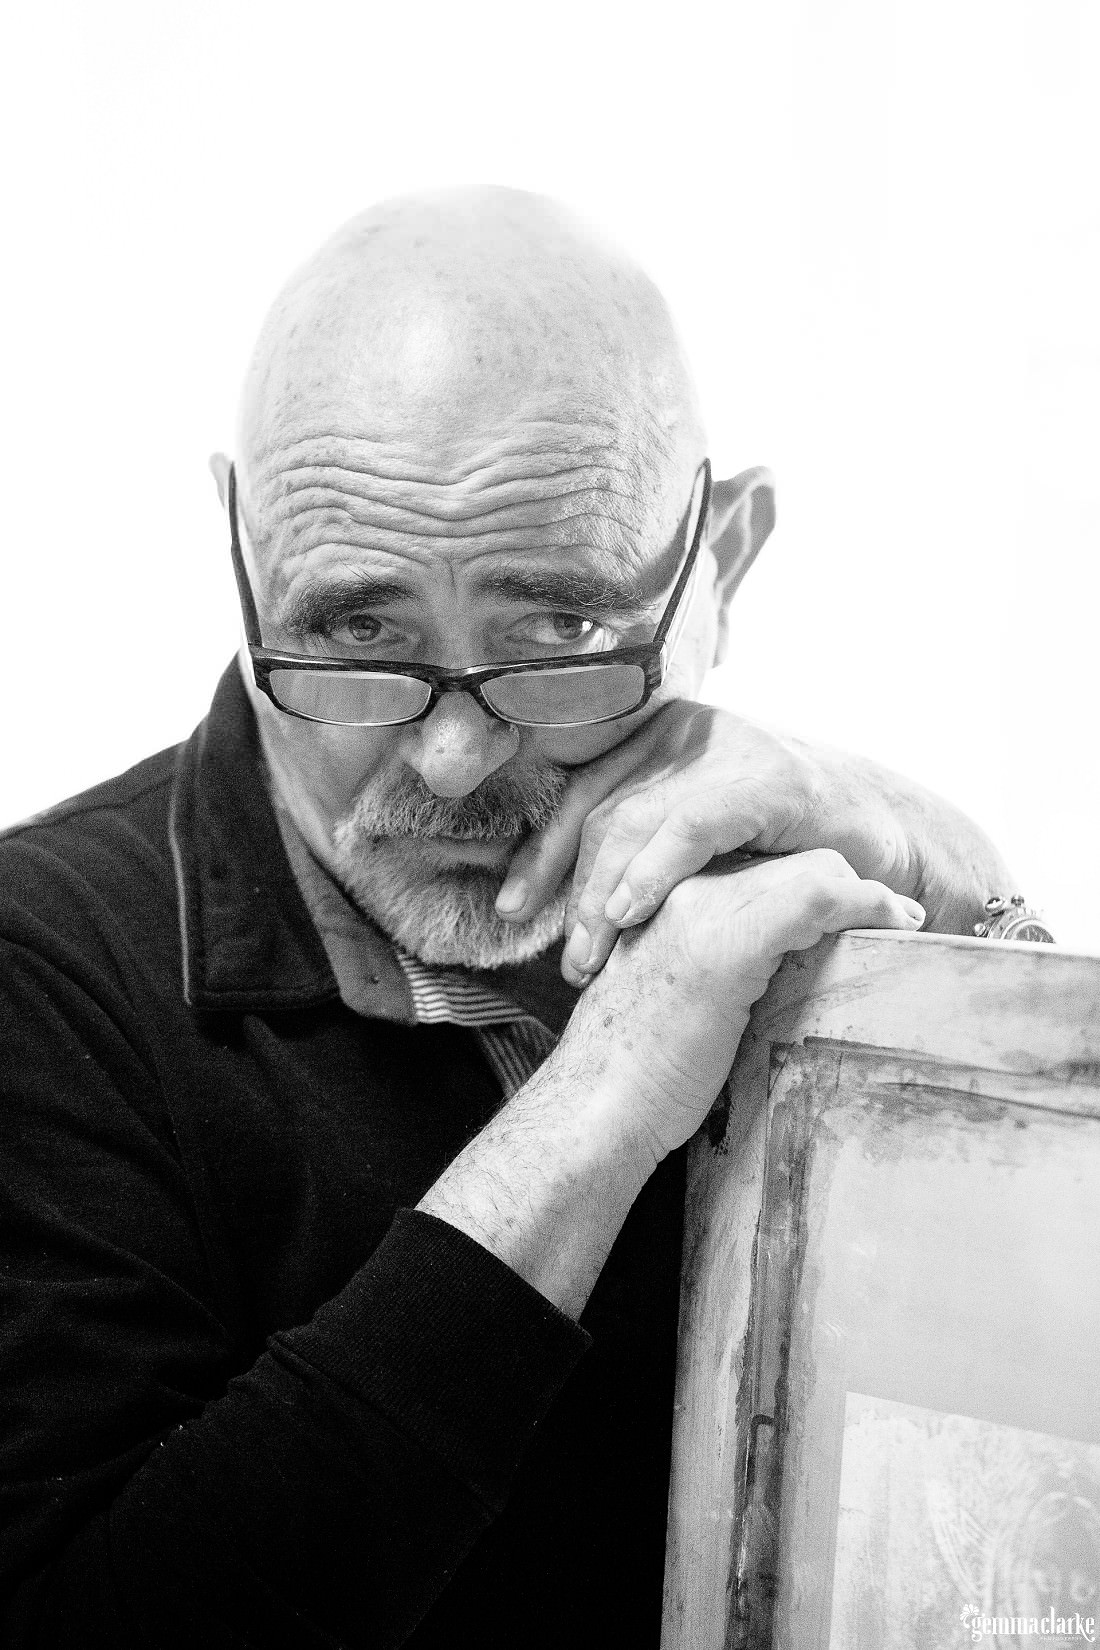 A black and white head and shoulder portrait of Elvio Marchionni leaning on the edge of a canvas looking over his glasses at the camera.